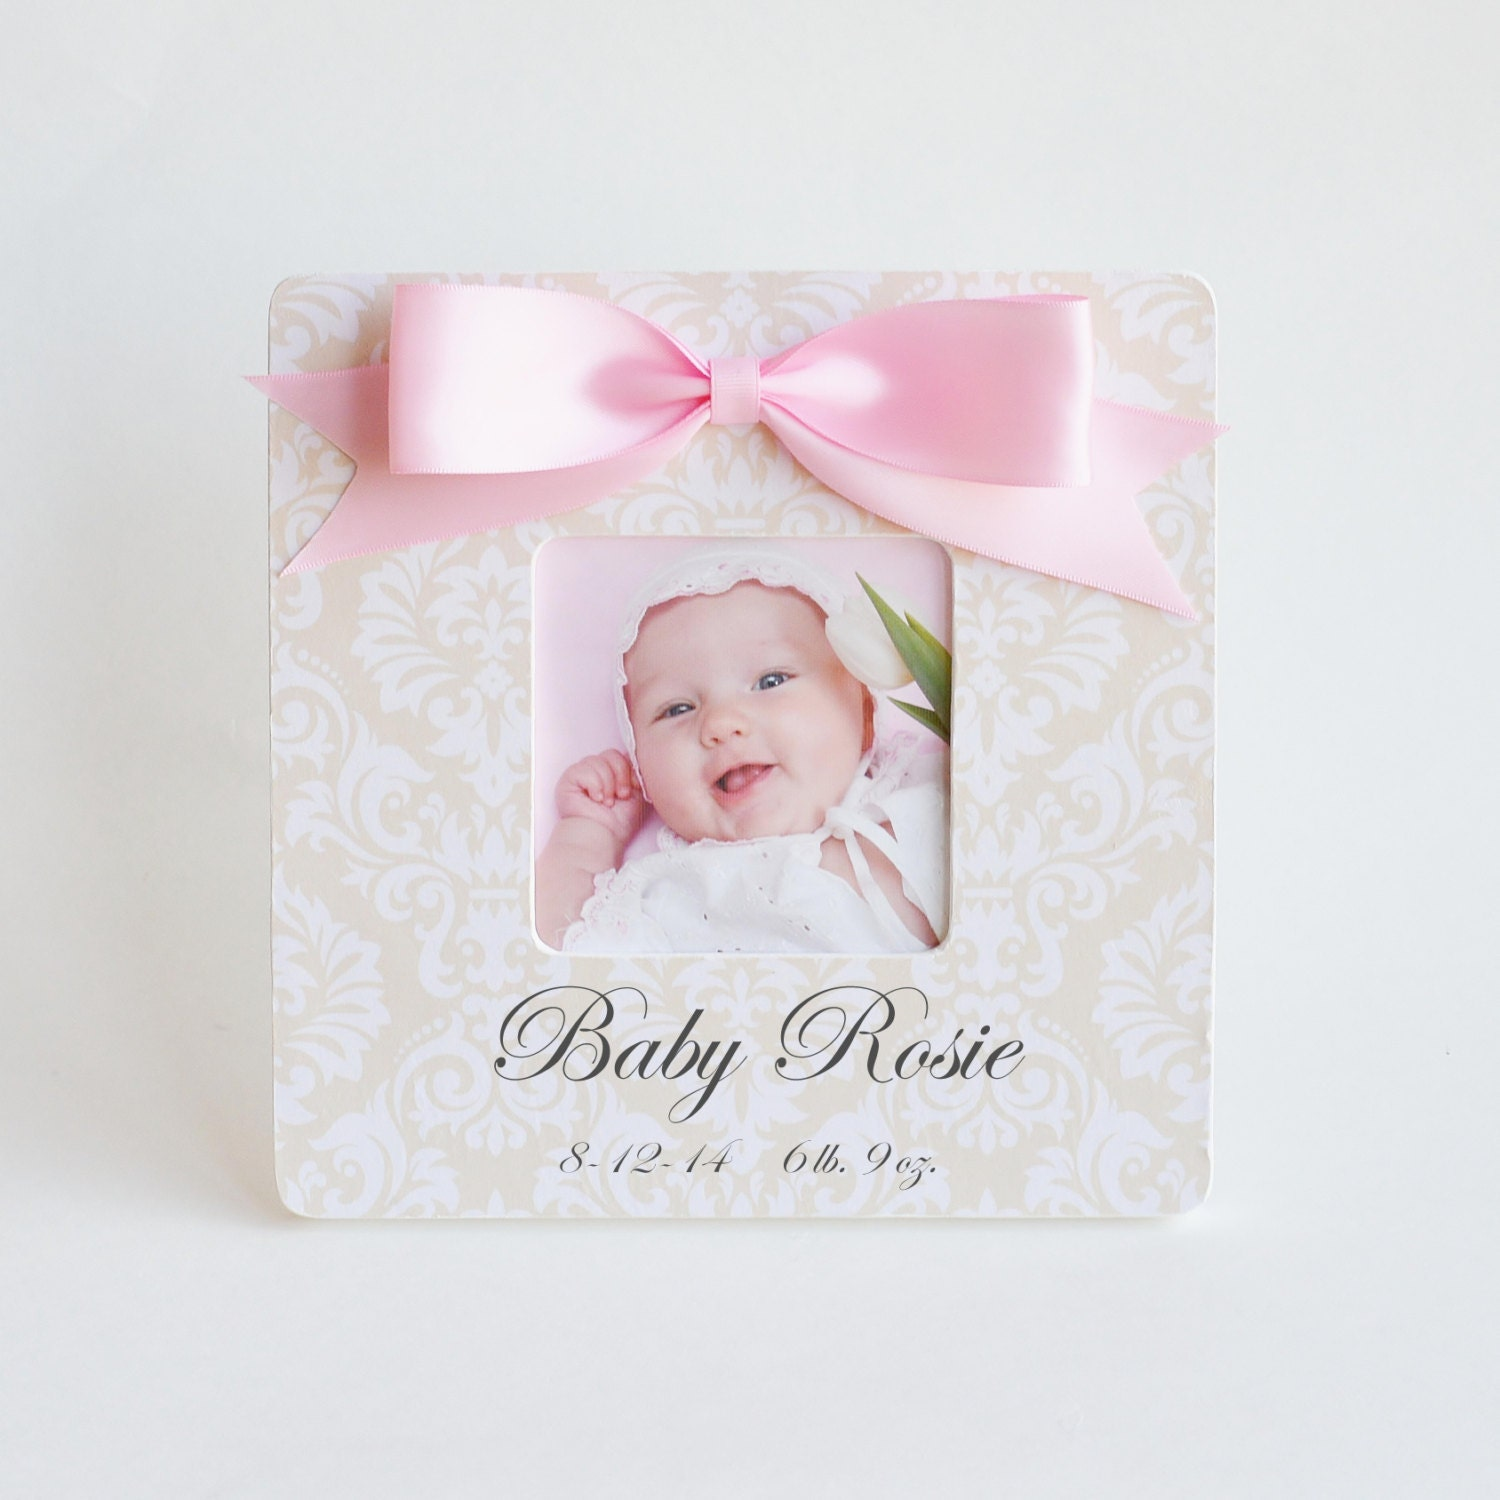 3Inch Crystal Heart Round Baby Photo Frame Metal Alloy